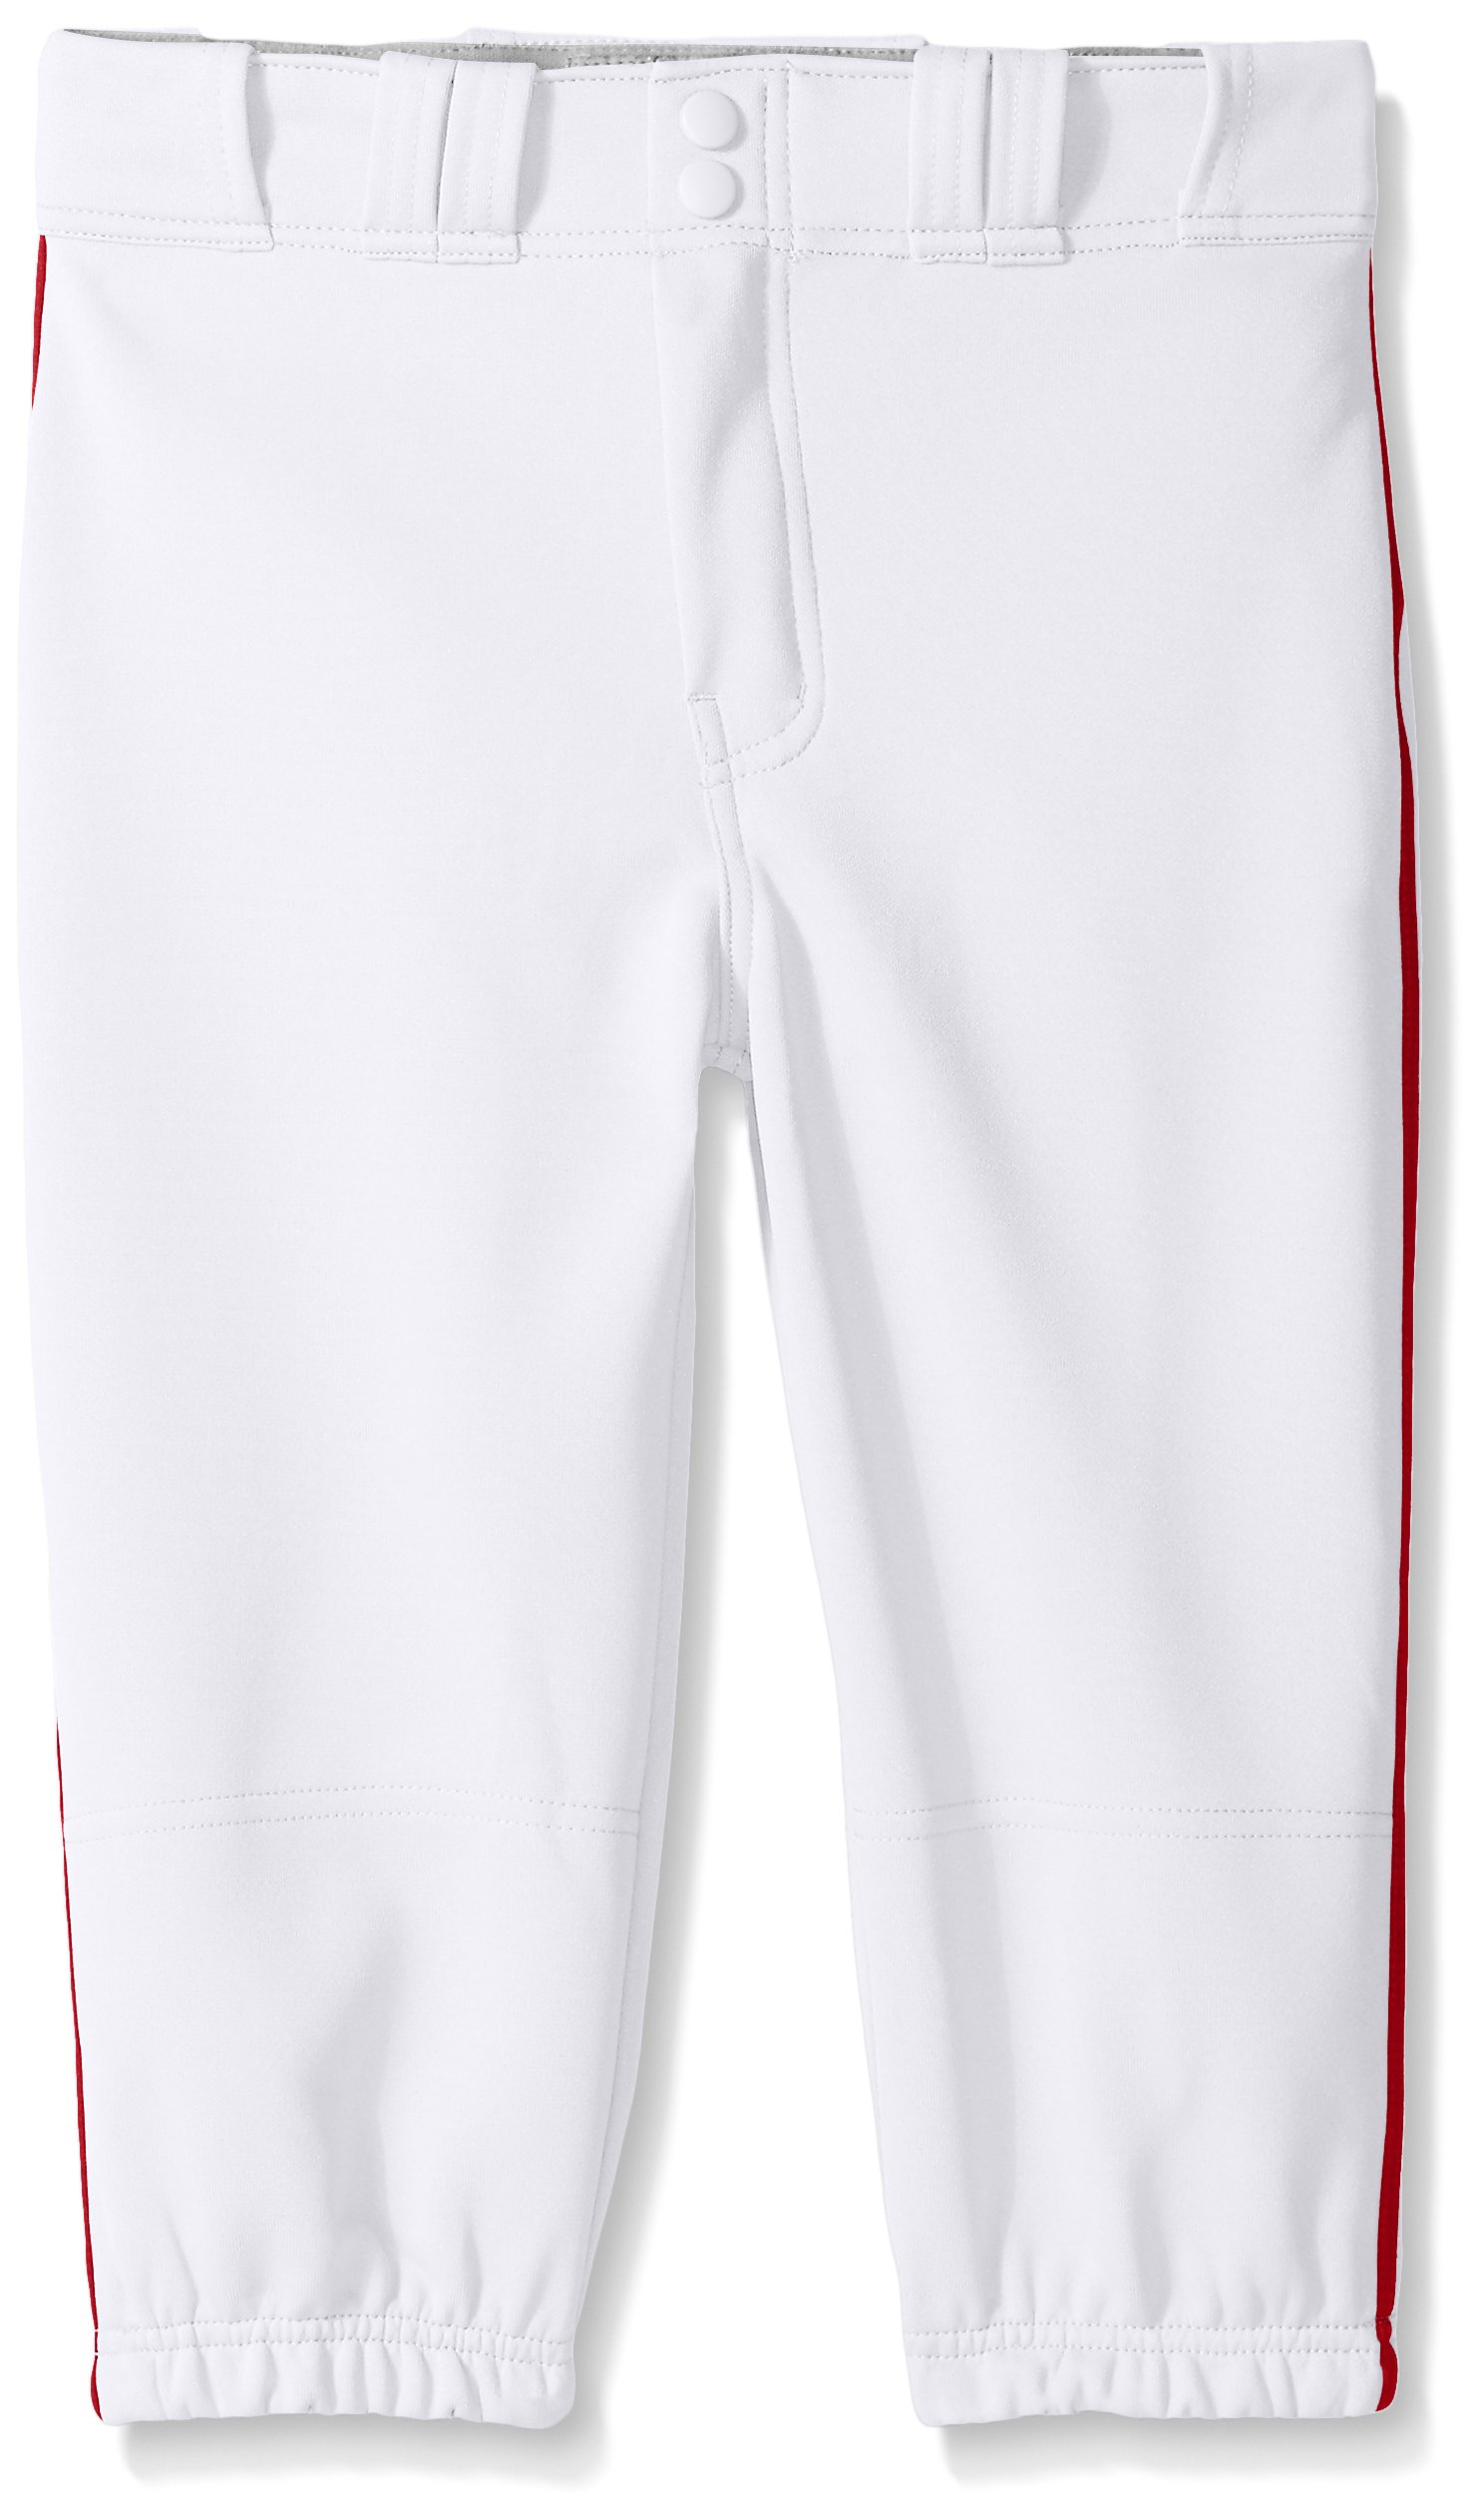 Easton Boys PRO Plus Piped Knicker, White/Red, Small